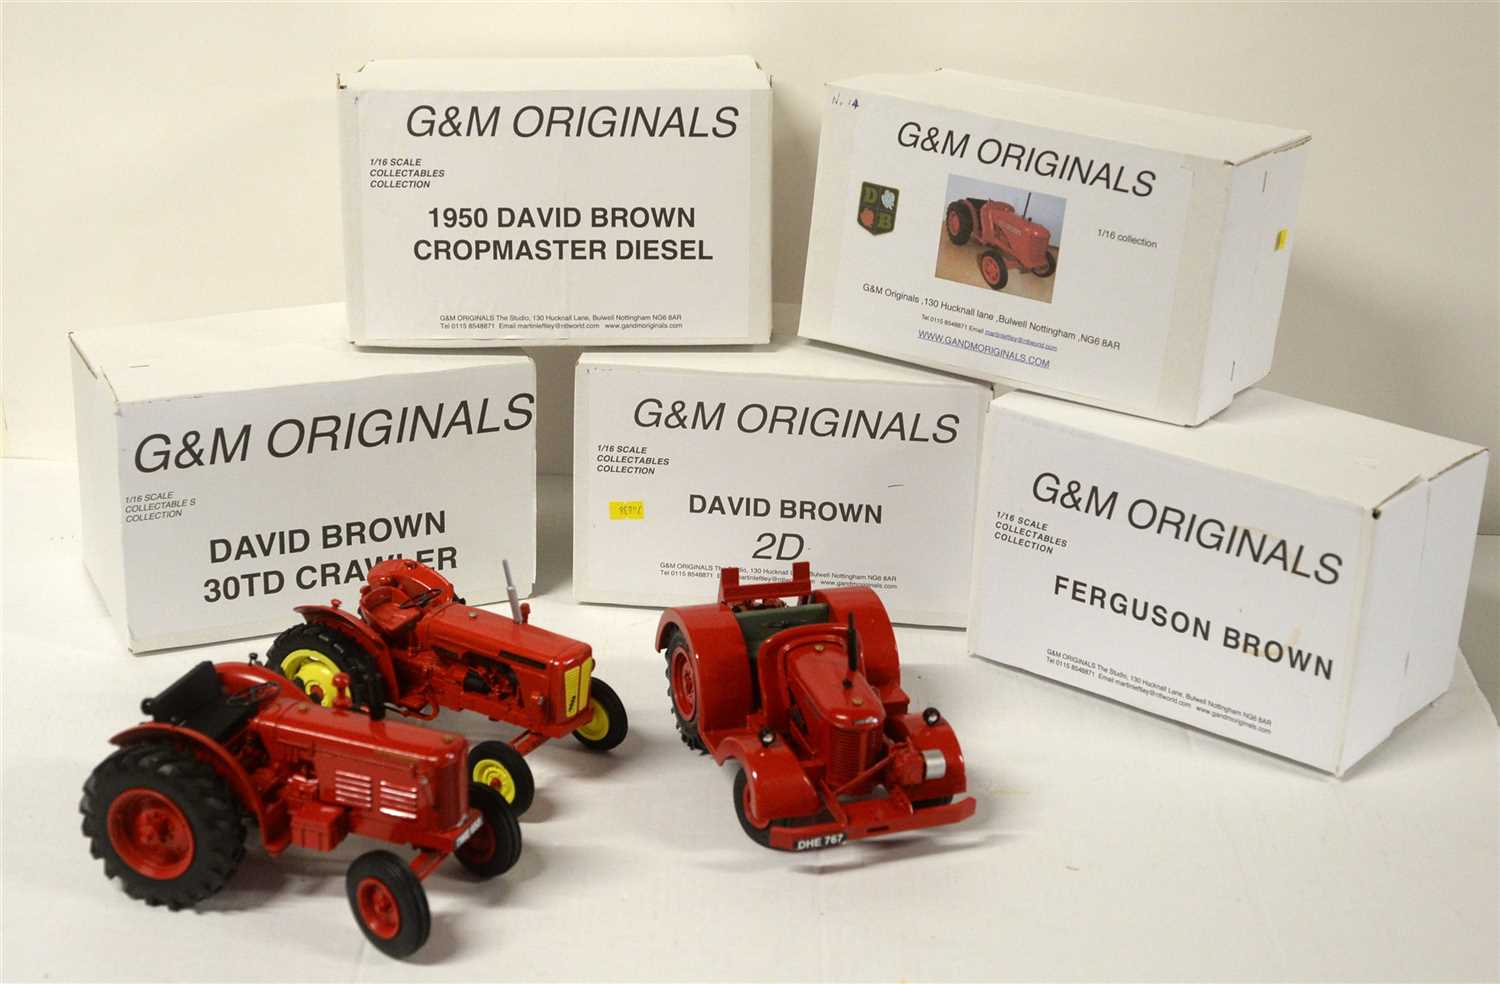 Lot 1323-Die-cast 1/16th scale model tractors by G & M Originals.